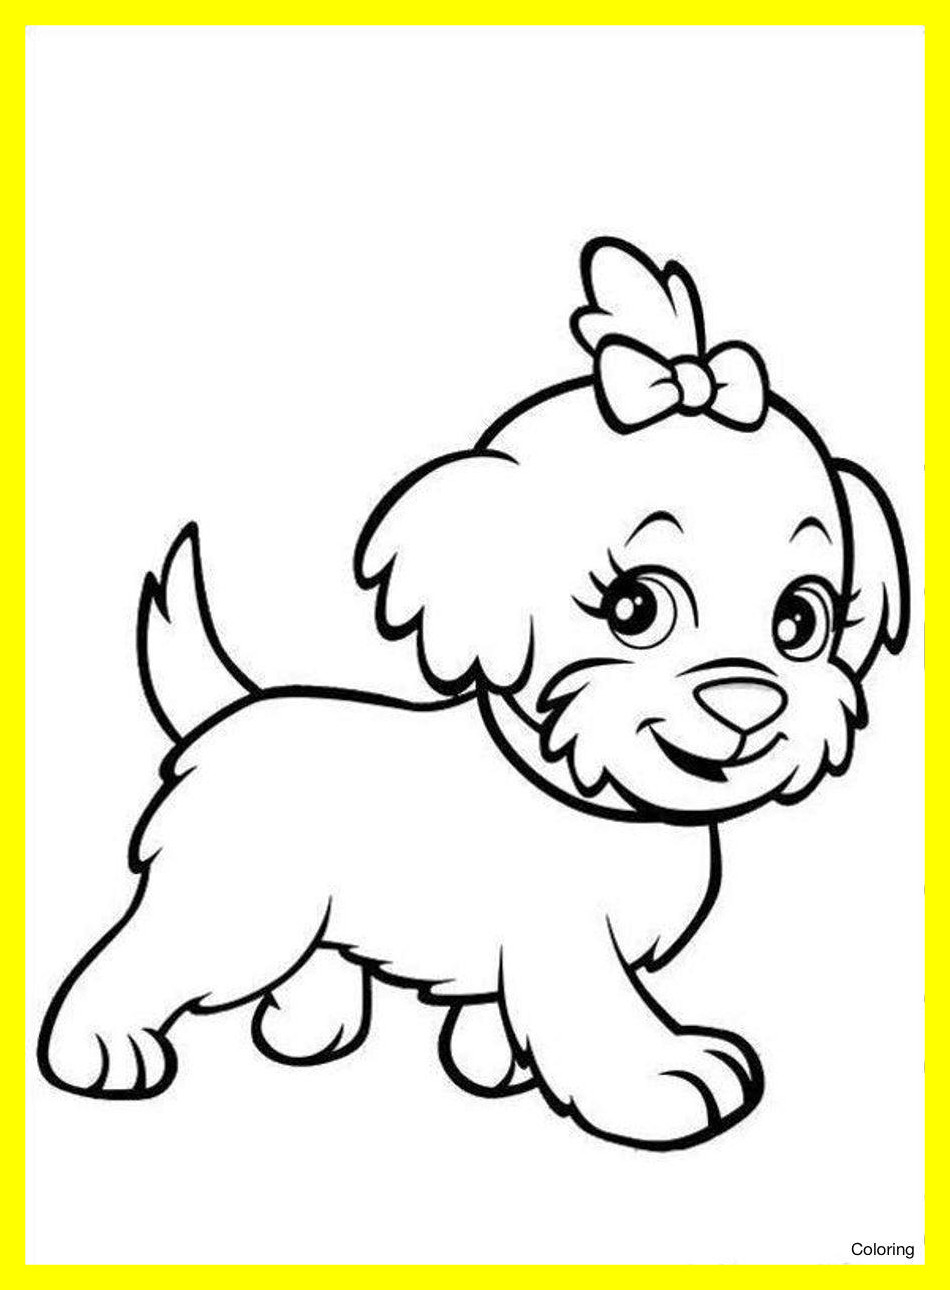 Puppy Dog Coloring Pages Puppy Dog Coloring Pages Bing Images Patterns Pinterest 21183101